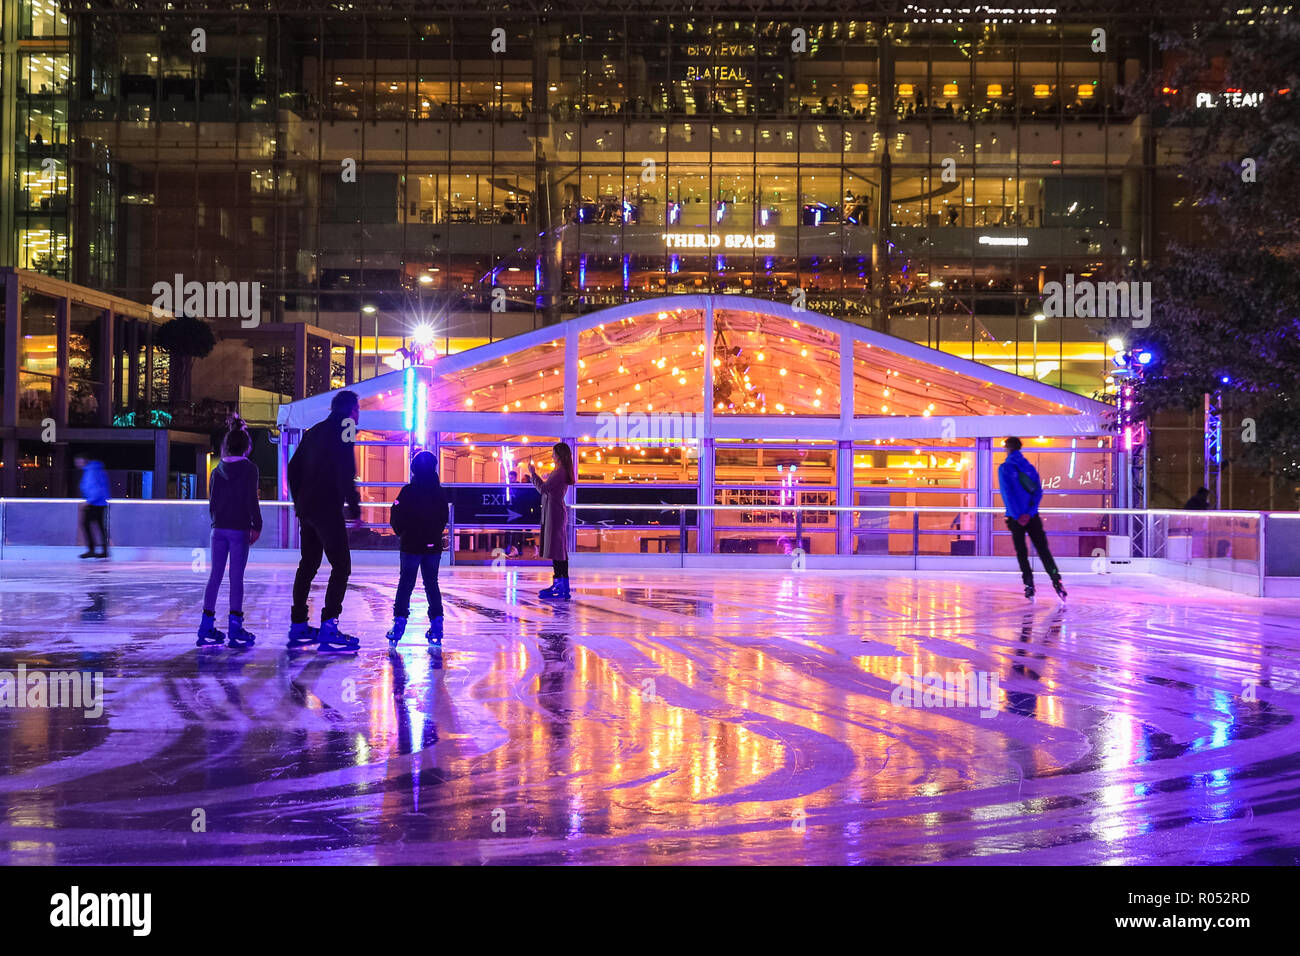 Canary Wharf, London, UK, 1st Nov 2018. Skaters on the ice. The Canary Wharf ice rink 2018 is launched with a party on the winter terrace and skate session. The ice rink is the only one in London with a 40 sq, metre LED screen, providing a colourful backdrop skaters can upload photos to. Credit: Imageplotter News and Sports/Alamy Live News Stock Photo